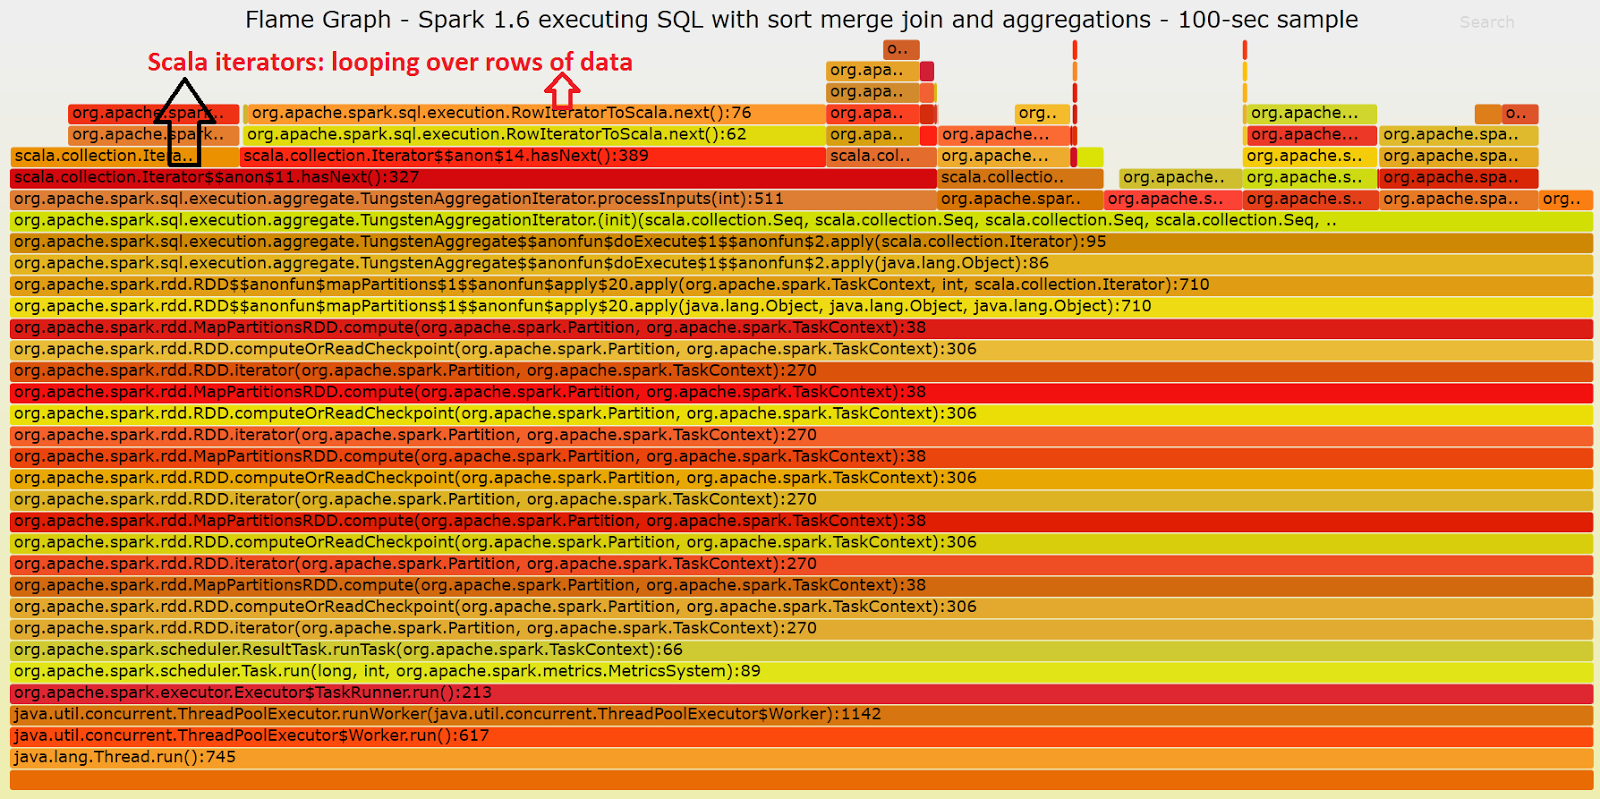 flamegraph_spark16_blog_wholestagecodegeneration_annotated